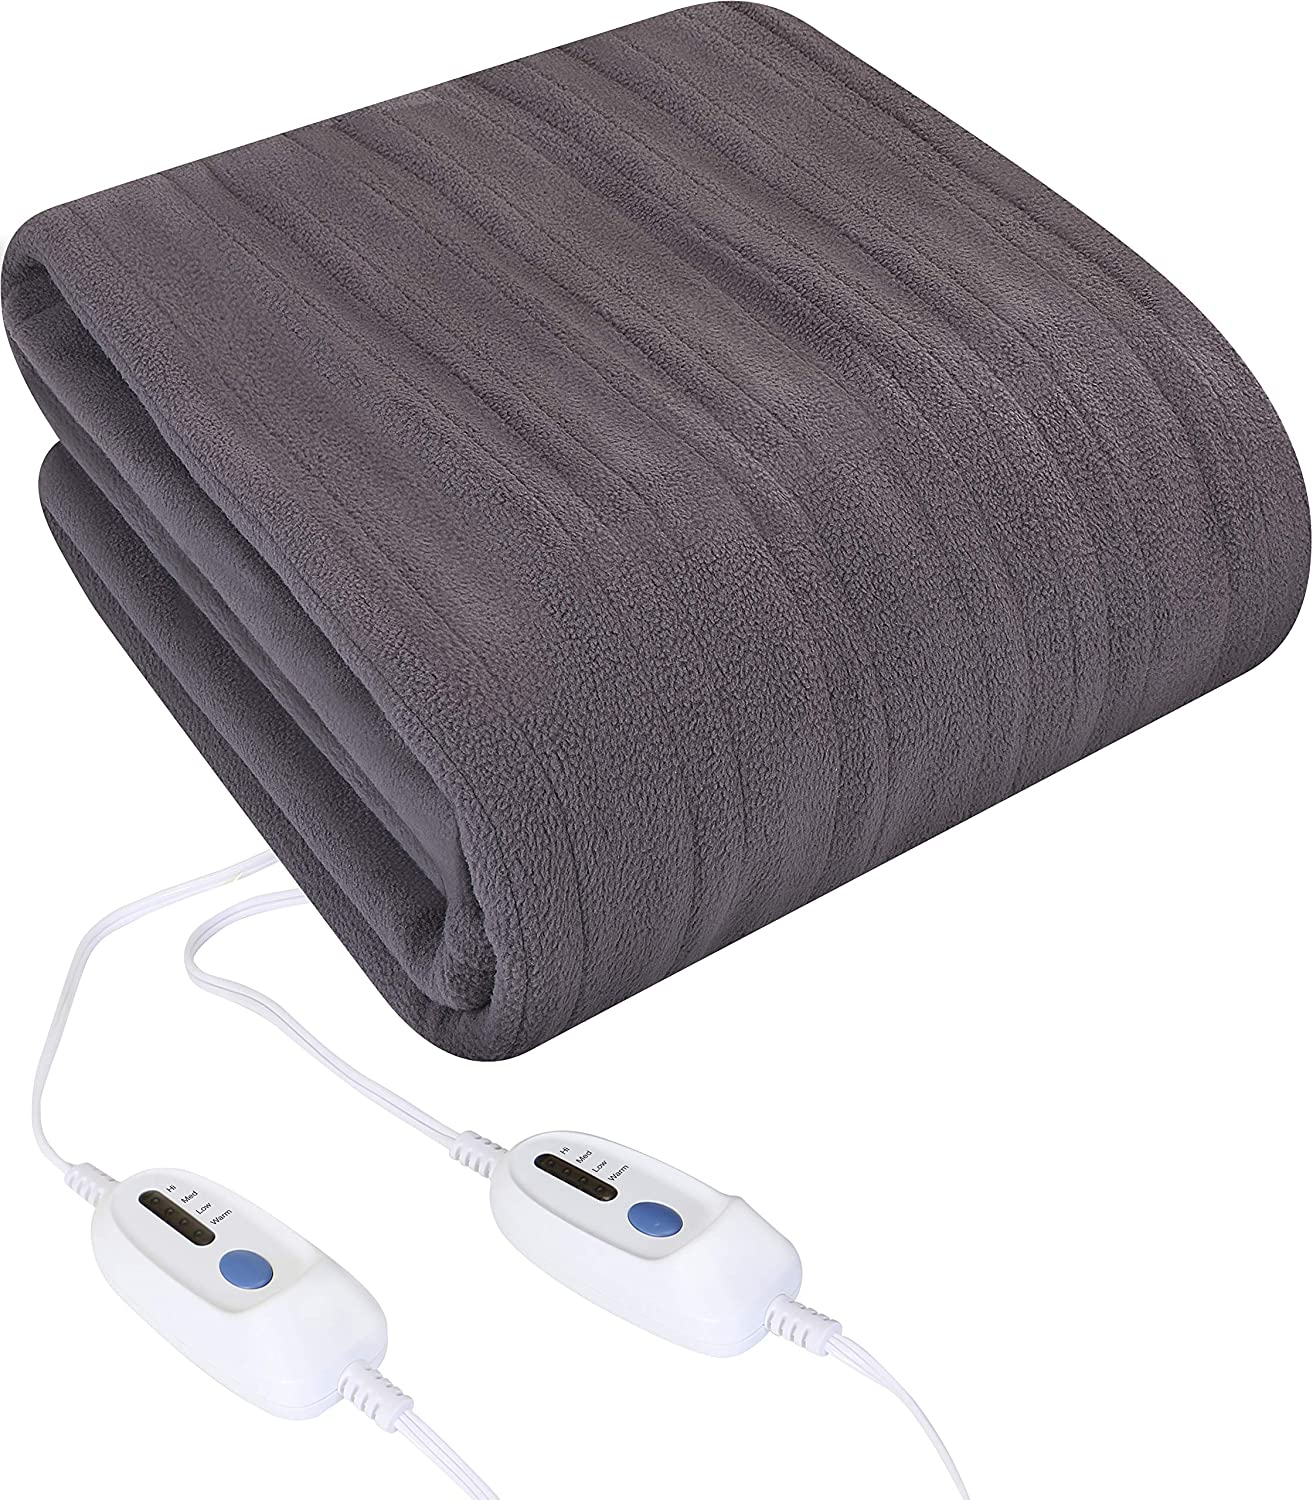 Utopia Electric Blanket